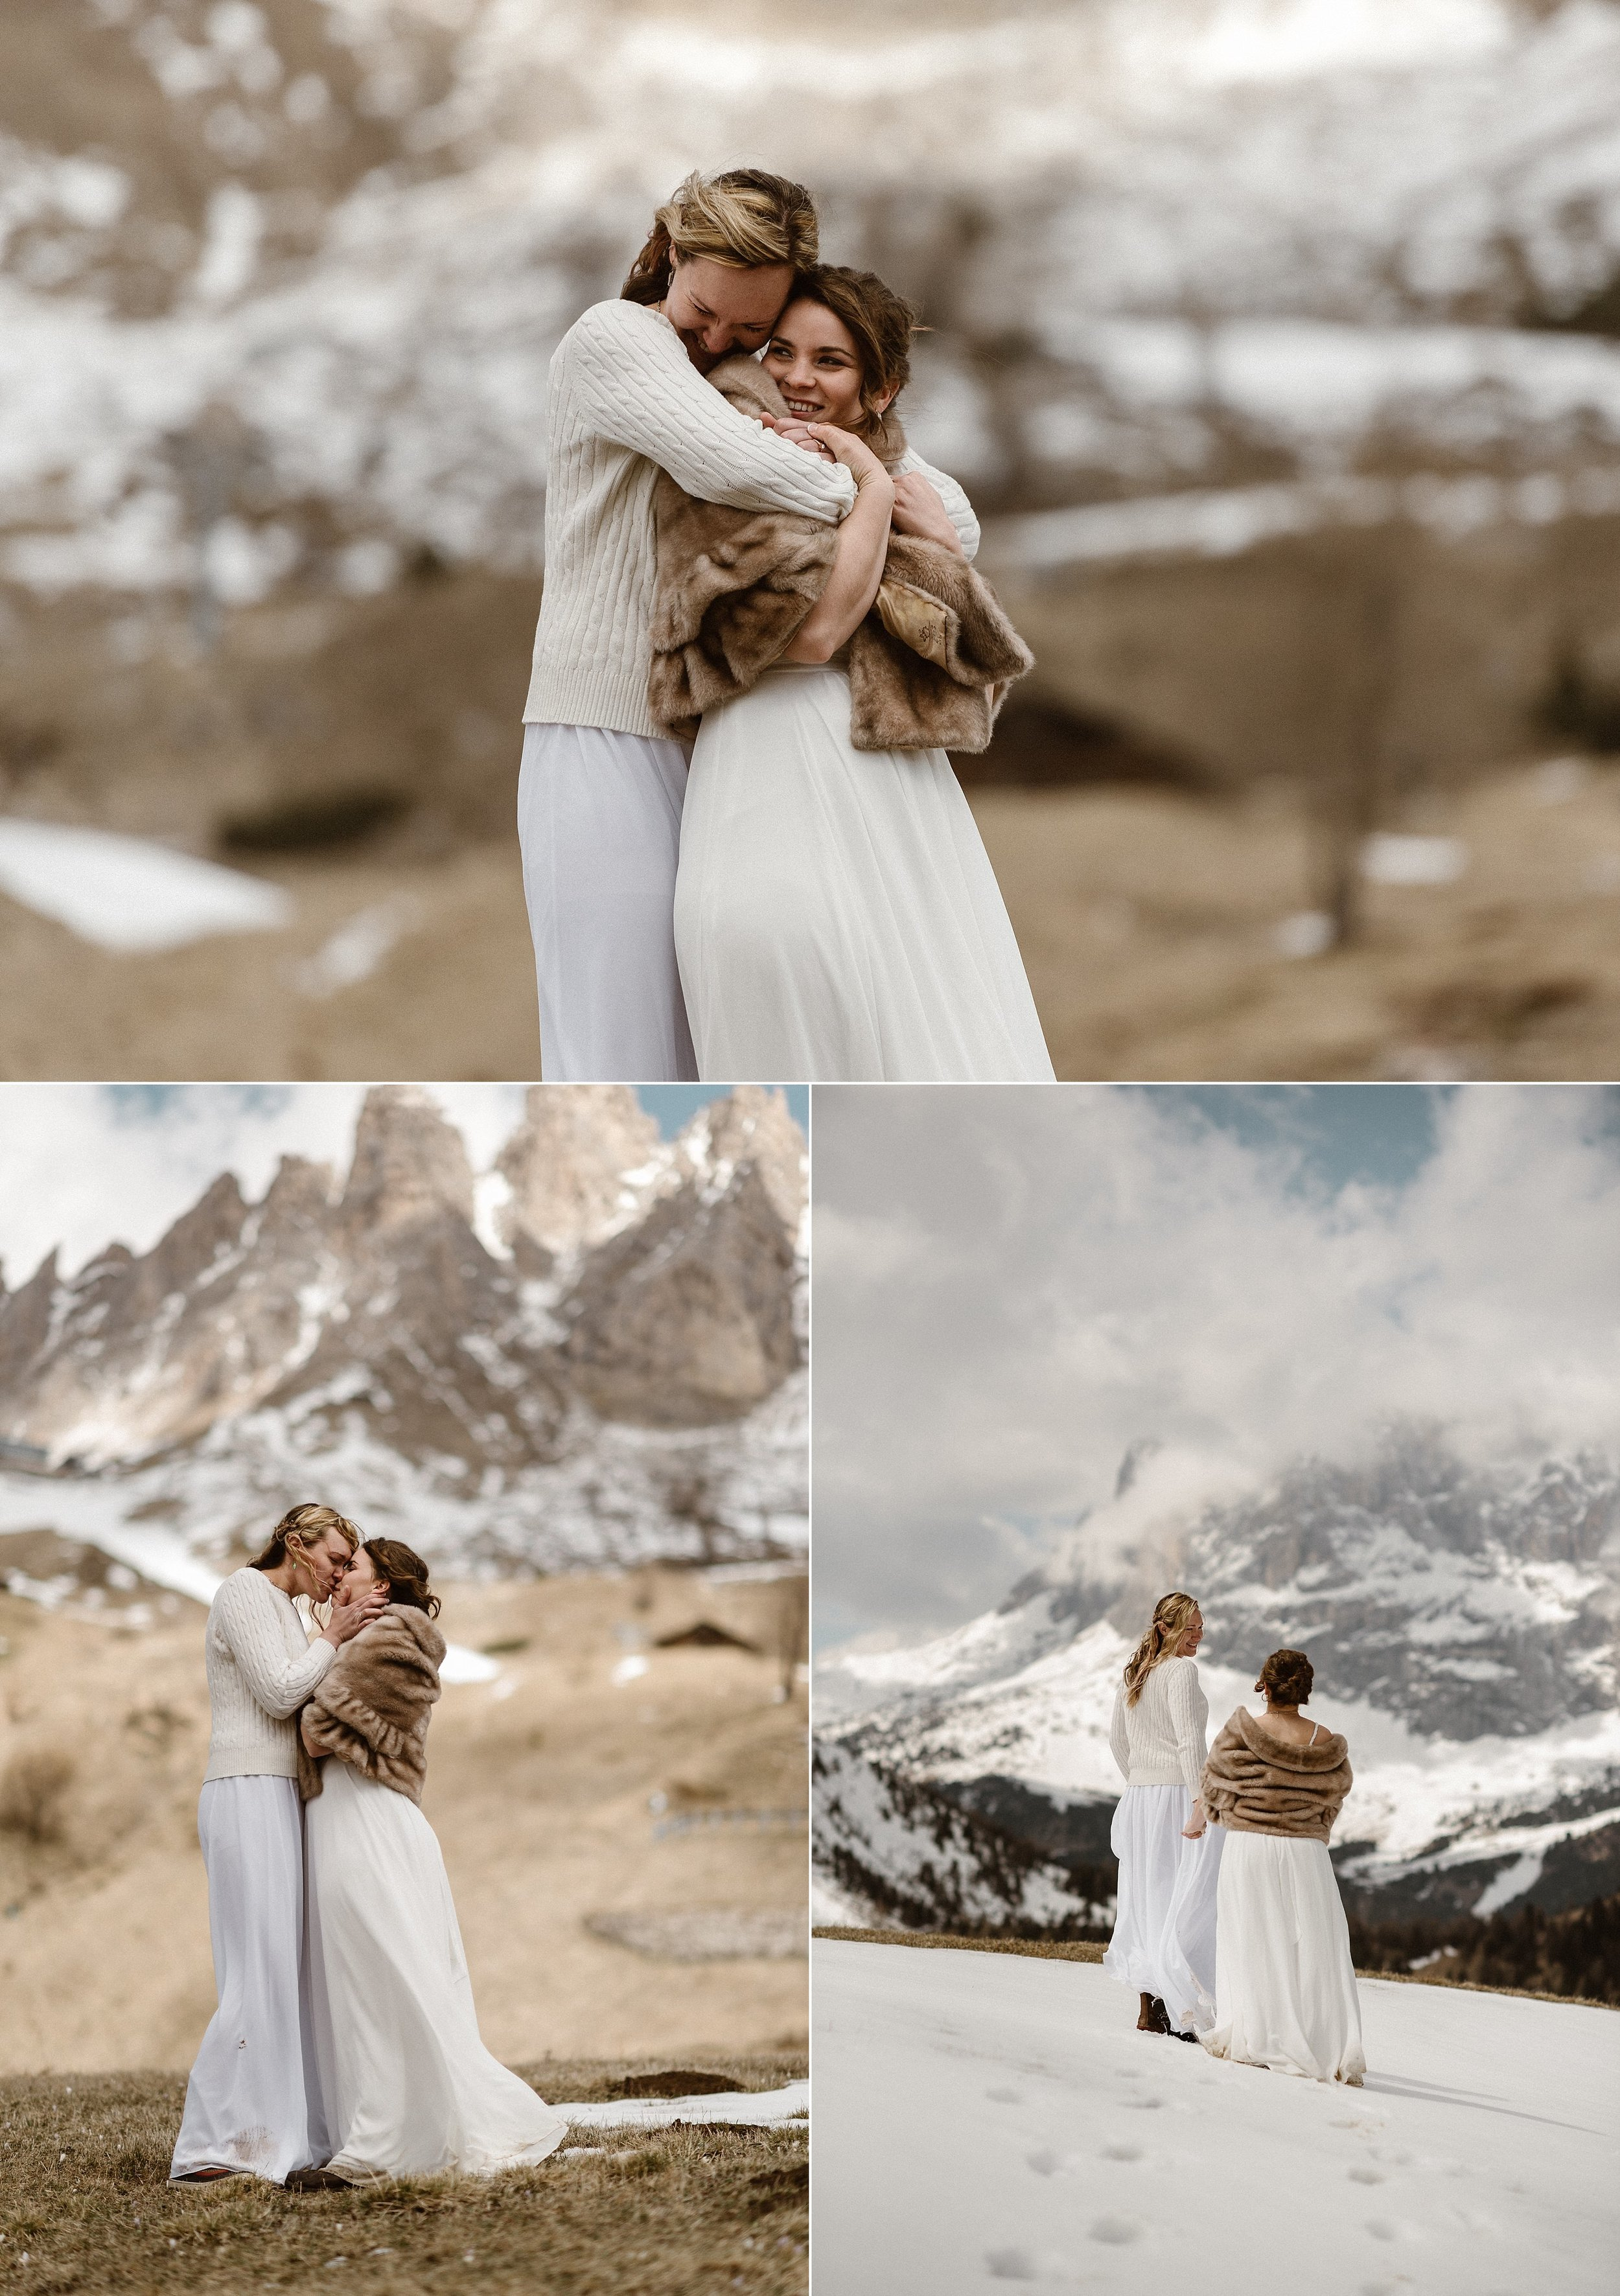 As the fog rolled in slowly they stopped to take in the amazing Northern Italian Dolomite mountains where they had picked for their intimate elopement ceremony. Photos by traveling wedding photographer Maddie Mae.